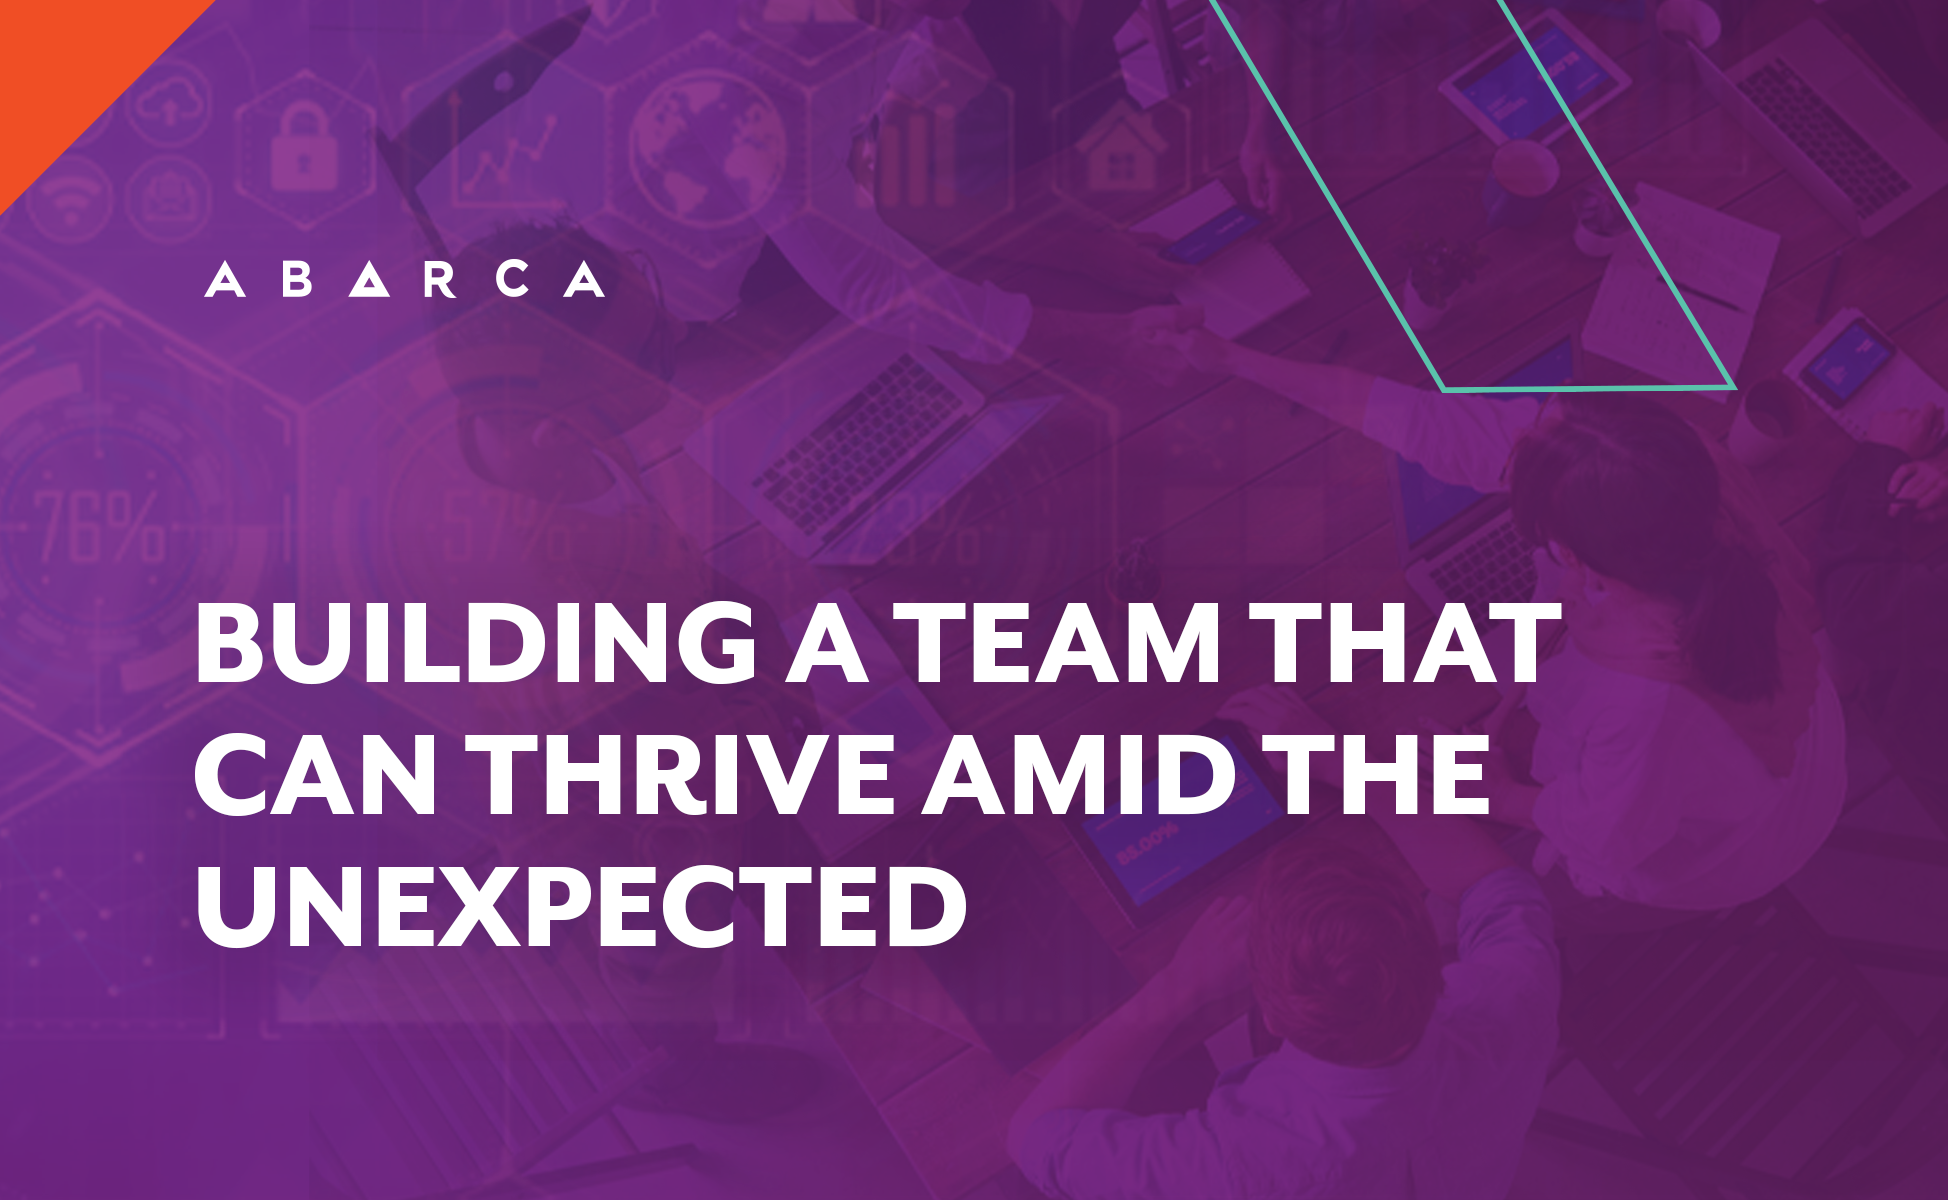 Abarca_Building a team that can thrive amid the unexpected